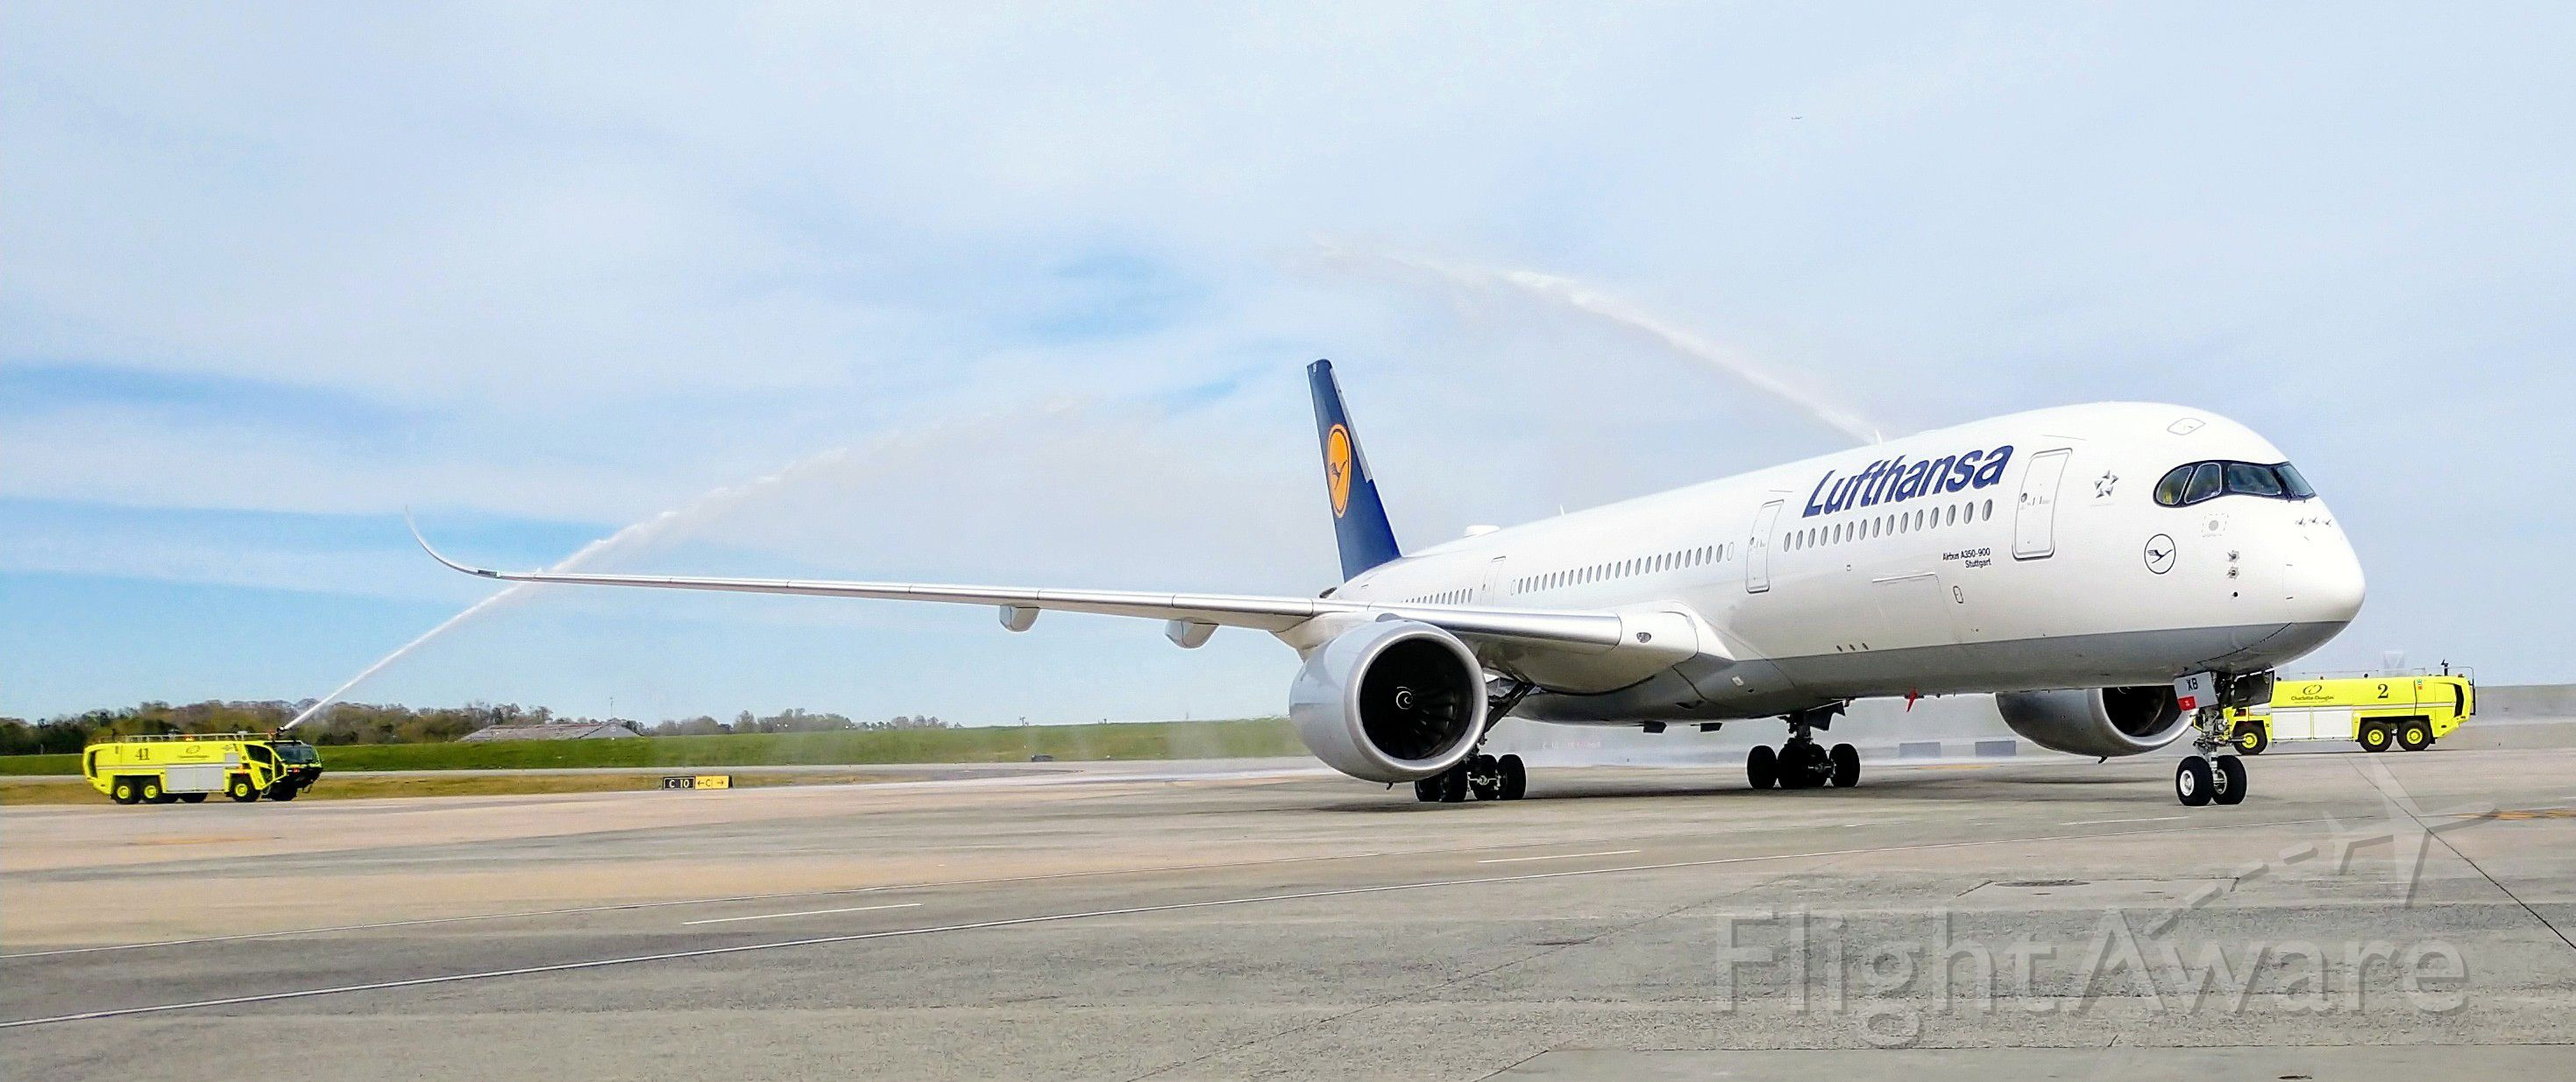 Airbus A350-900 (D-AIXB) - First day for regular A350-900 service by Lufthansa into CLT.<br /><br />3/31/19